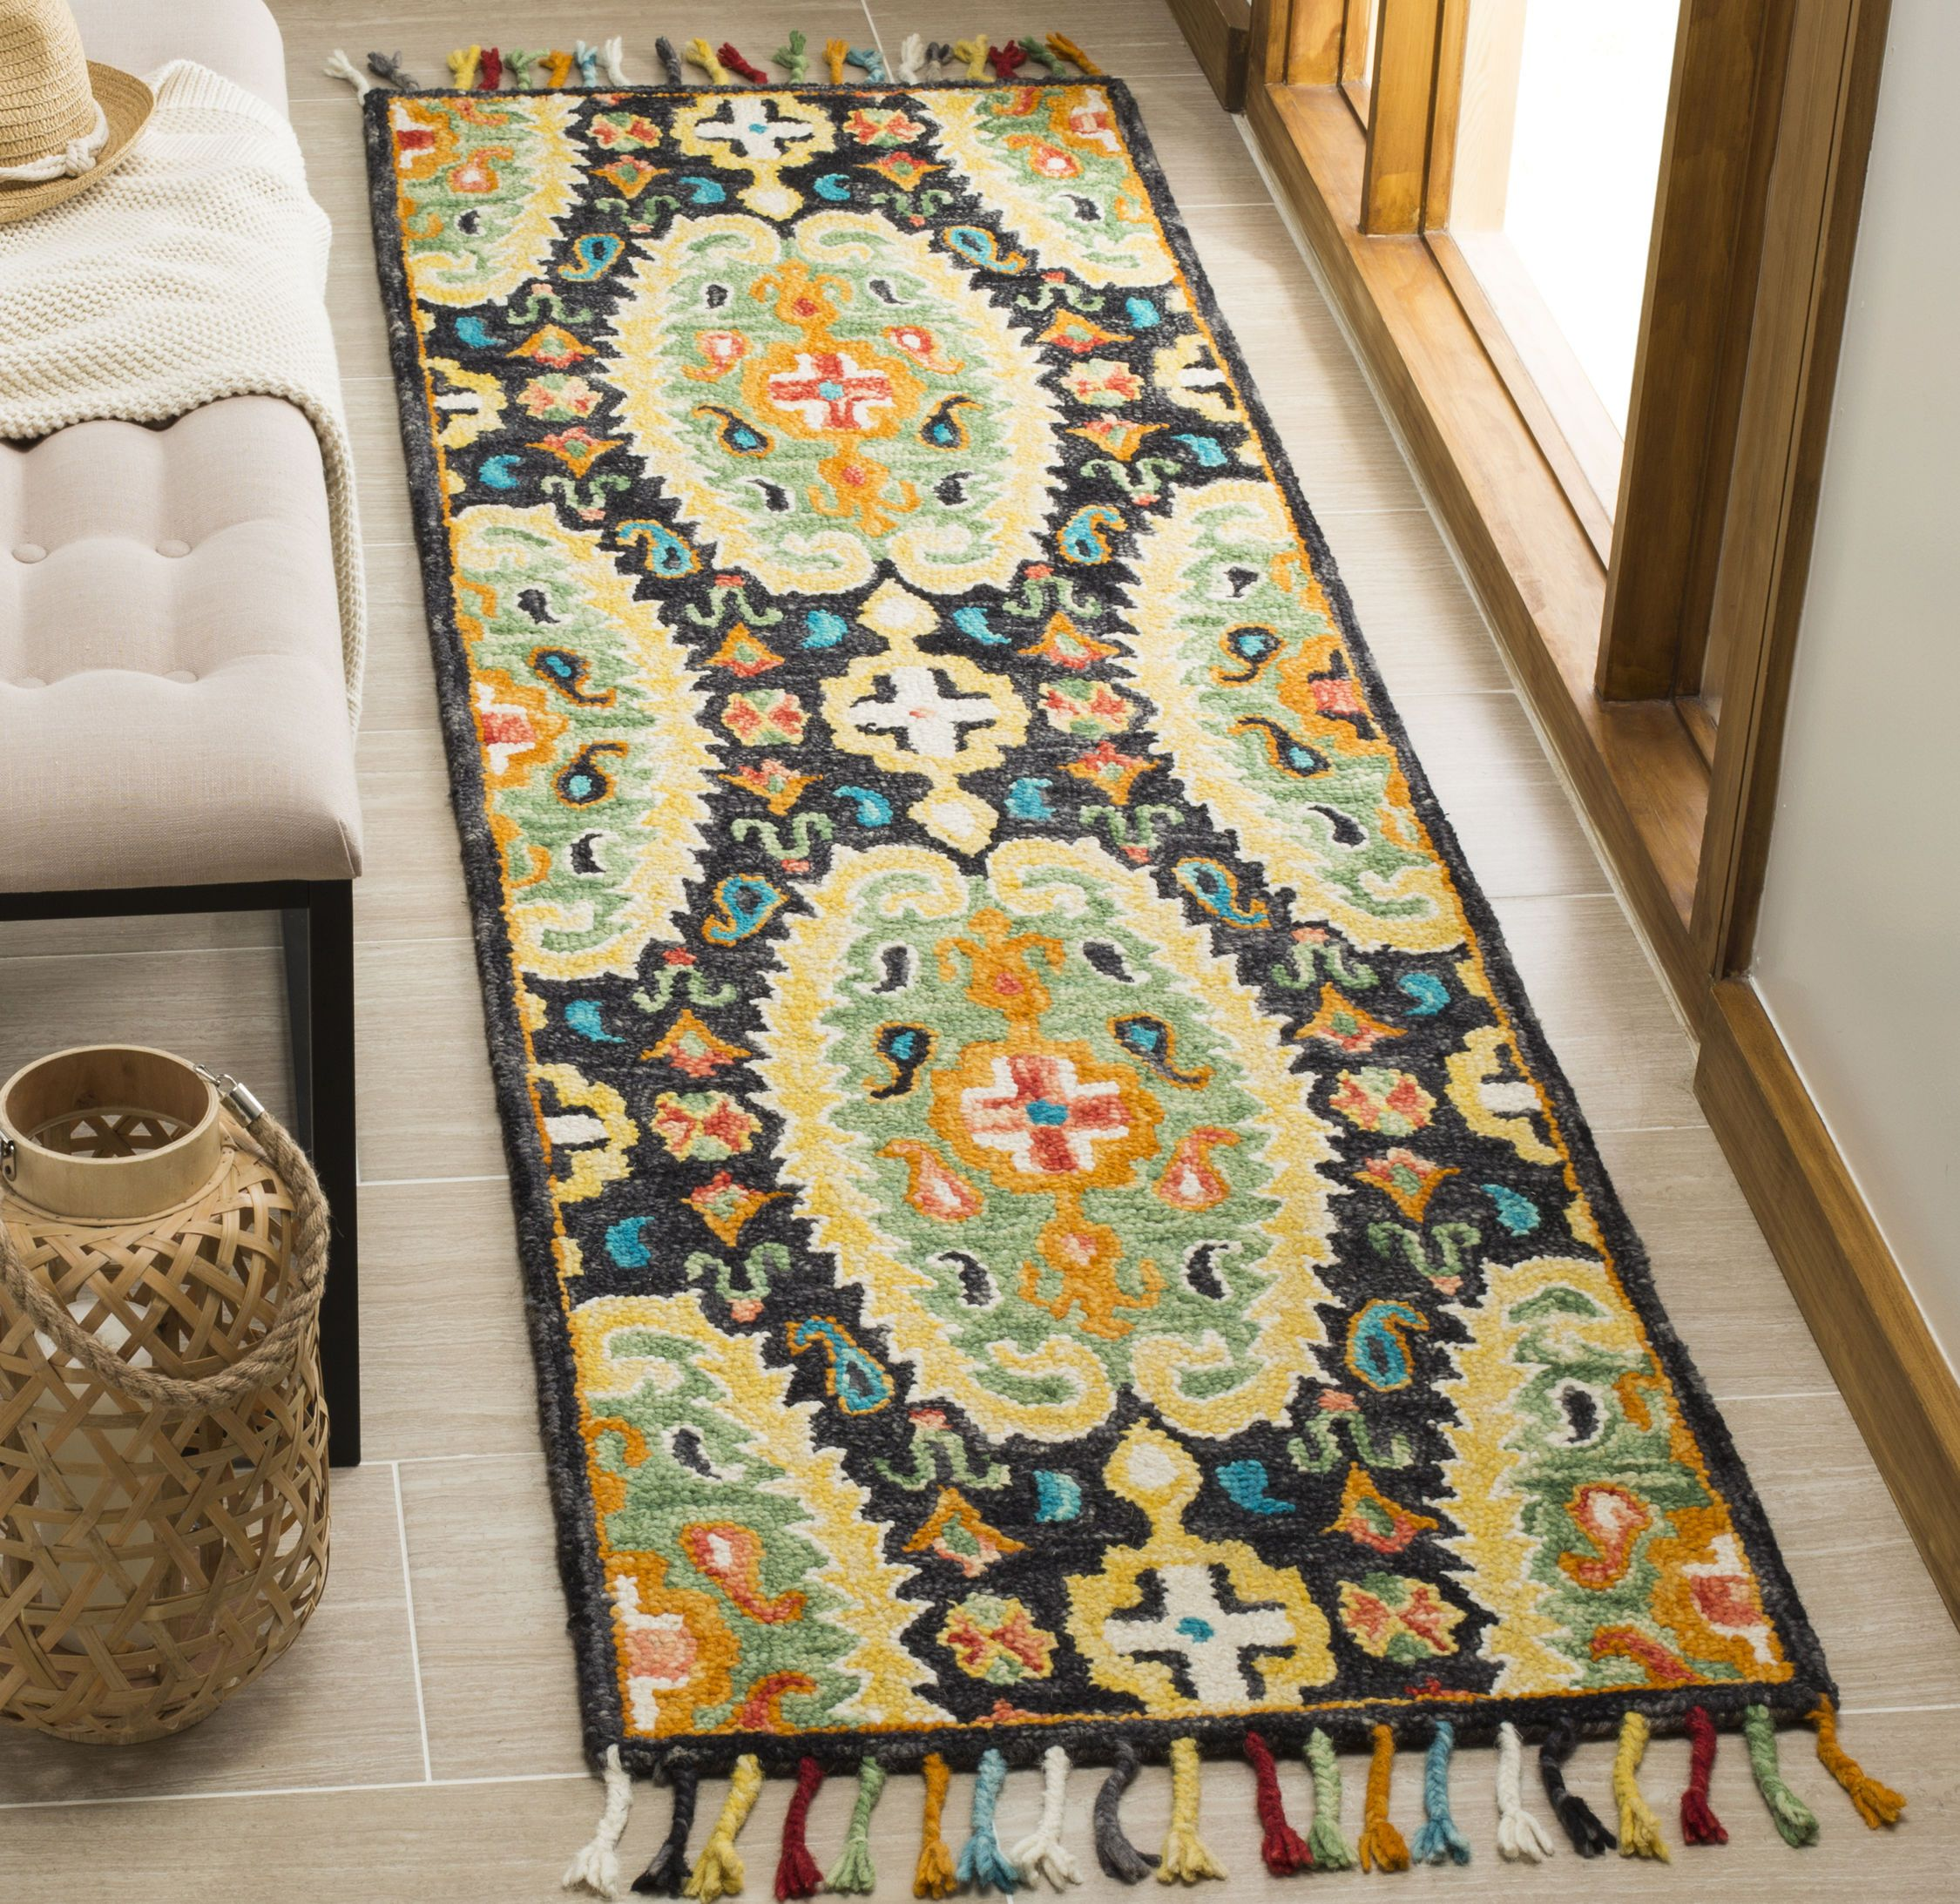 Blm454a Color Charcoal Gold Size 8 X 10 Area Rugs Southwestern Area Rugs Rugs